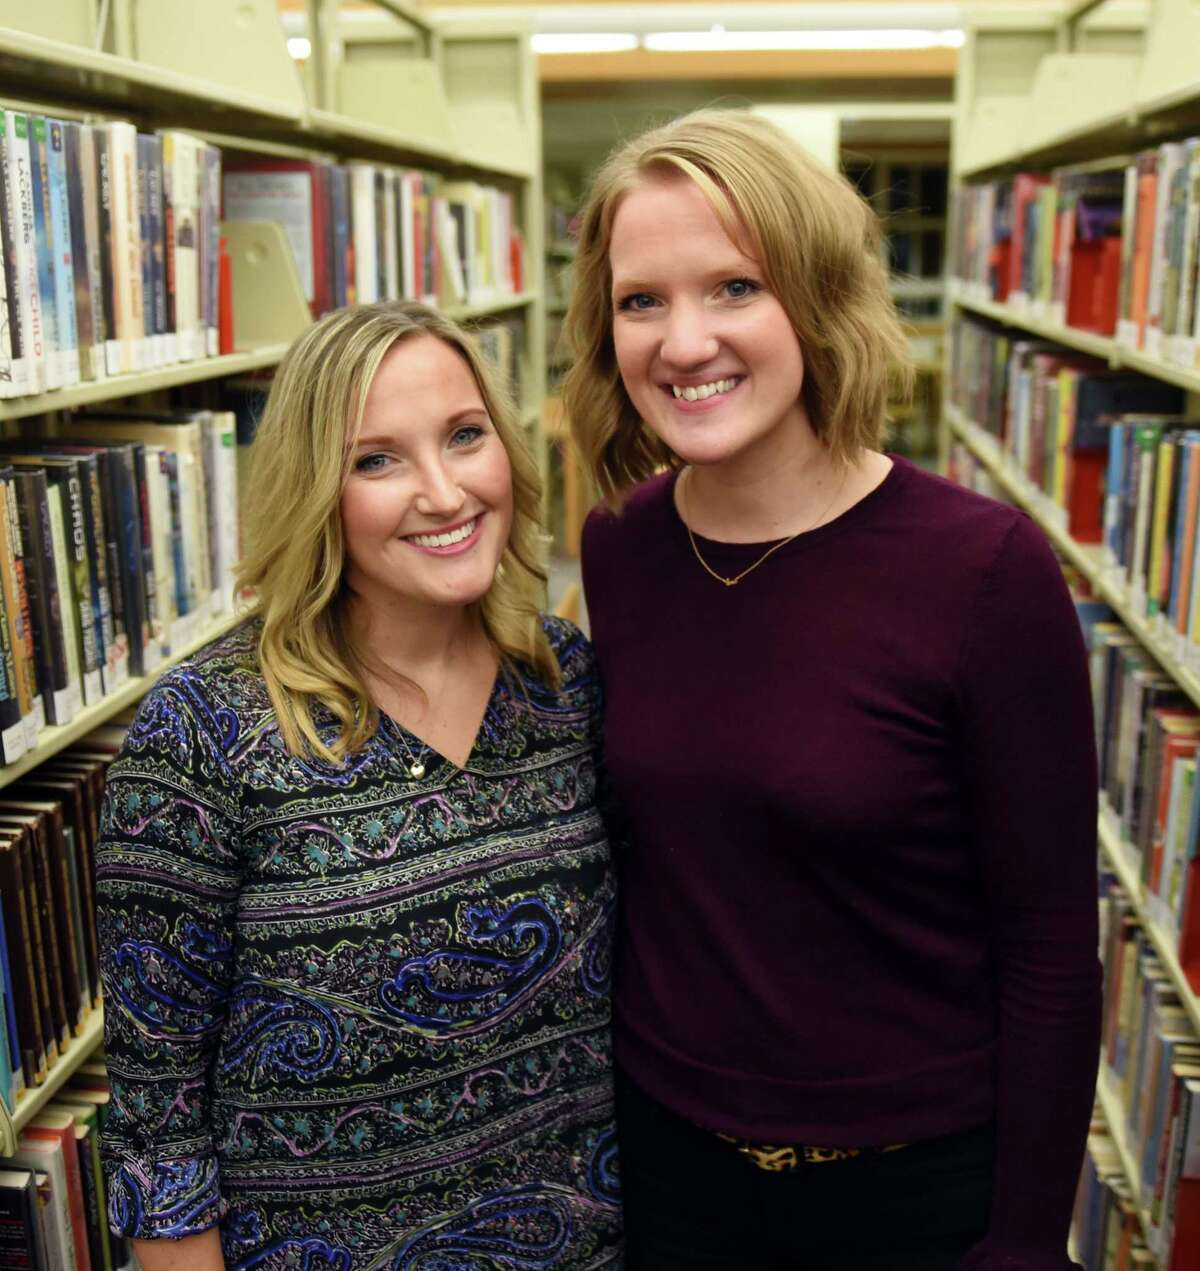 Val Santillo, left, with her sister Alison Krawczyk, right, at the Niskayuna Library on Wednesday, Nov. 15, 2017, in Niskayuna, N.Y. Alison is inspired by her sister, Val, a first-grade teacher at Red Mill Elementary. (Will Waldron/Times Union)